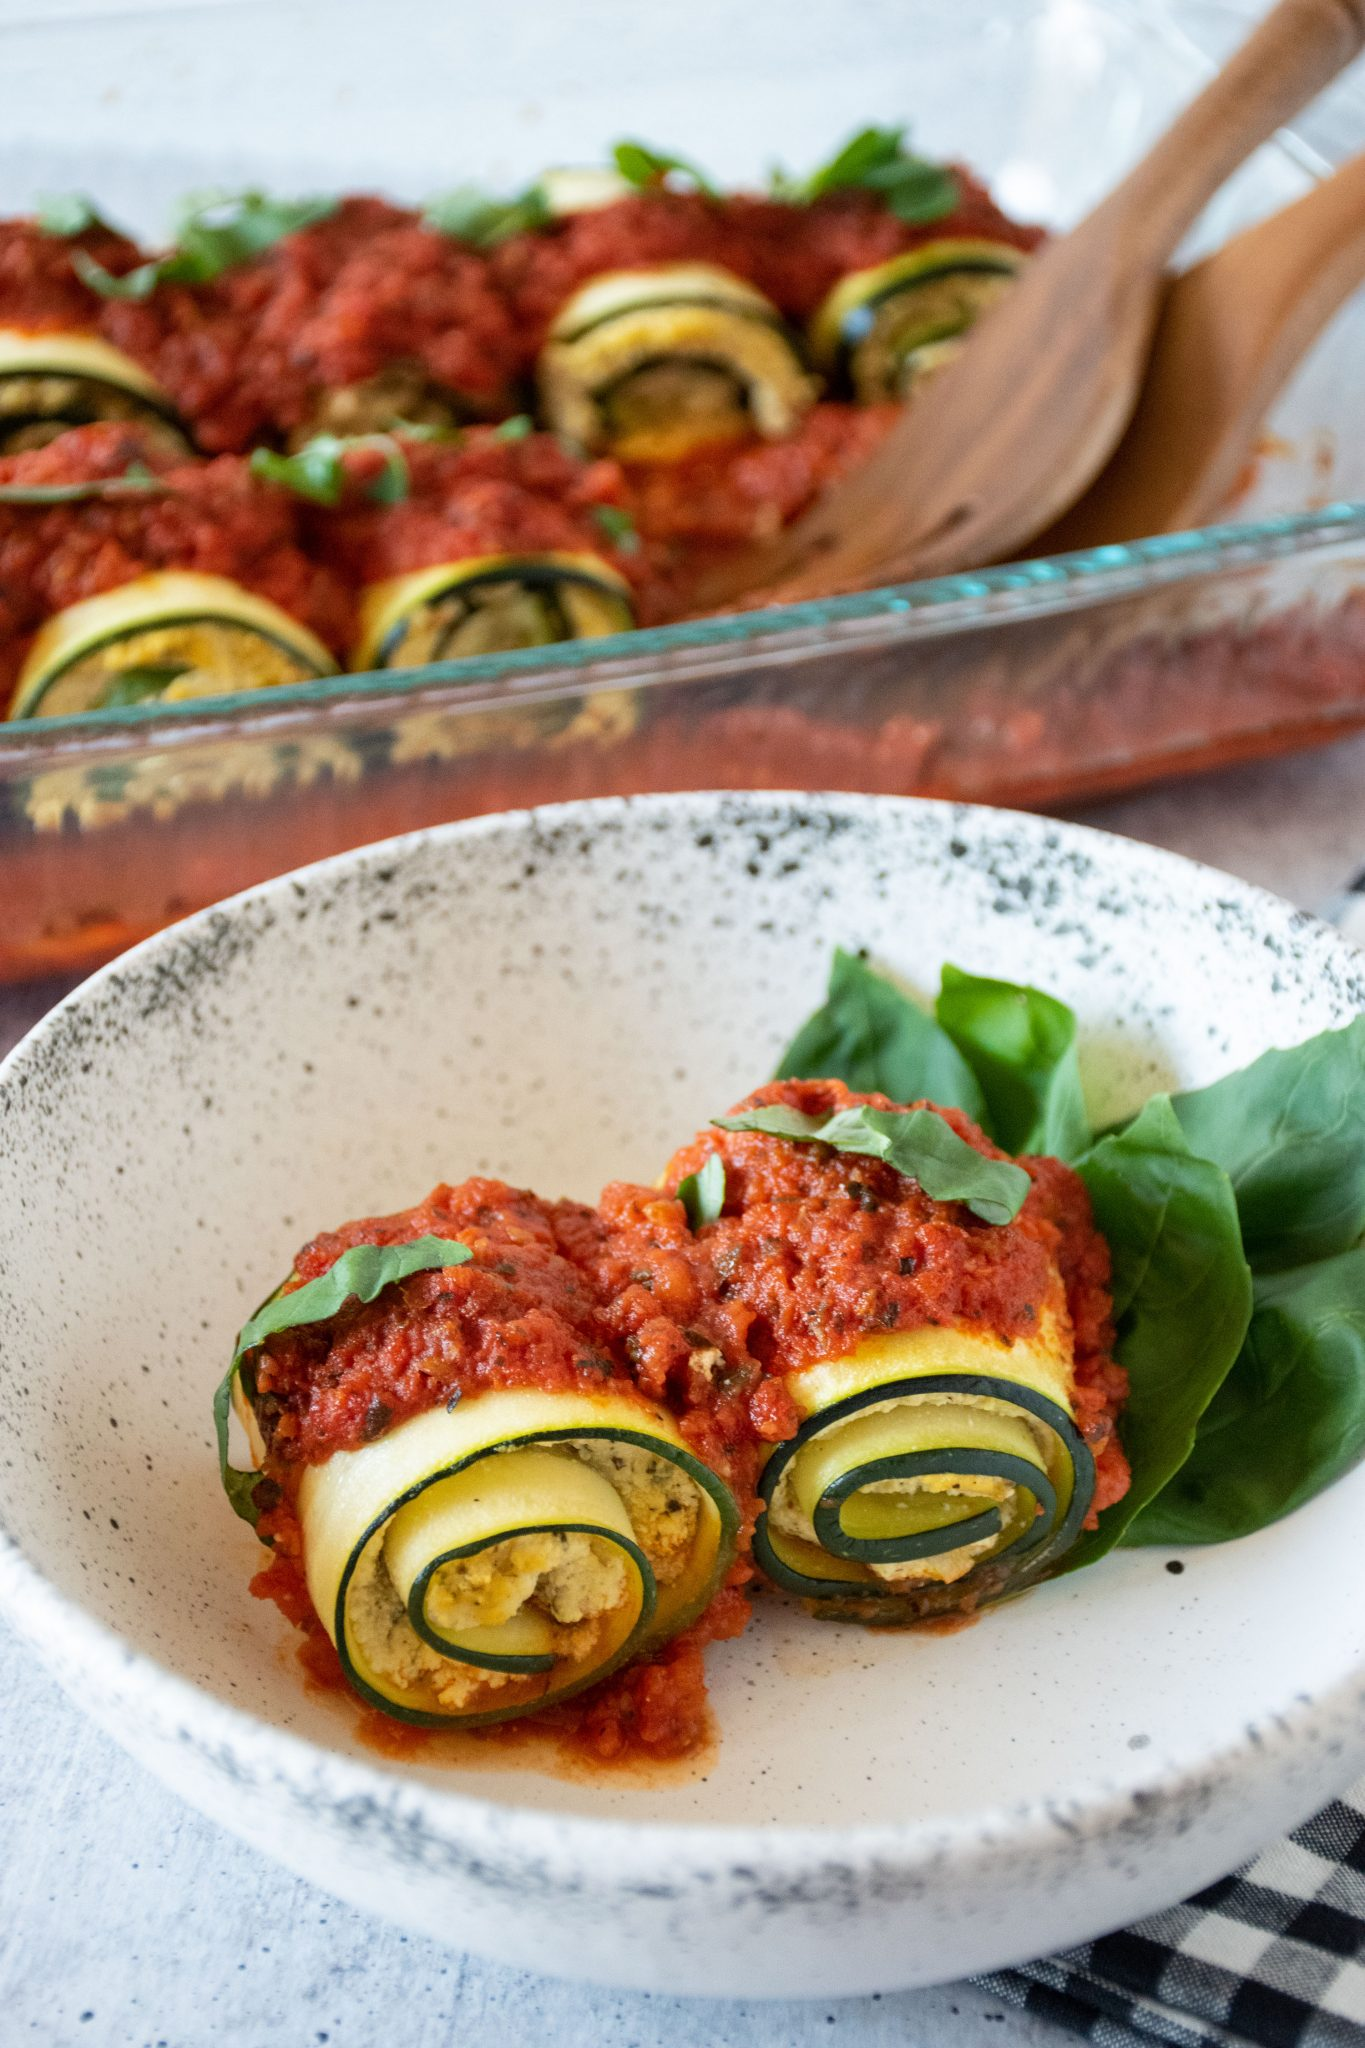 Two zucchini rolls in a bowl, with pan of rolls in background.